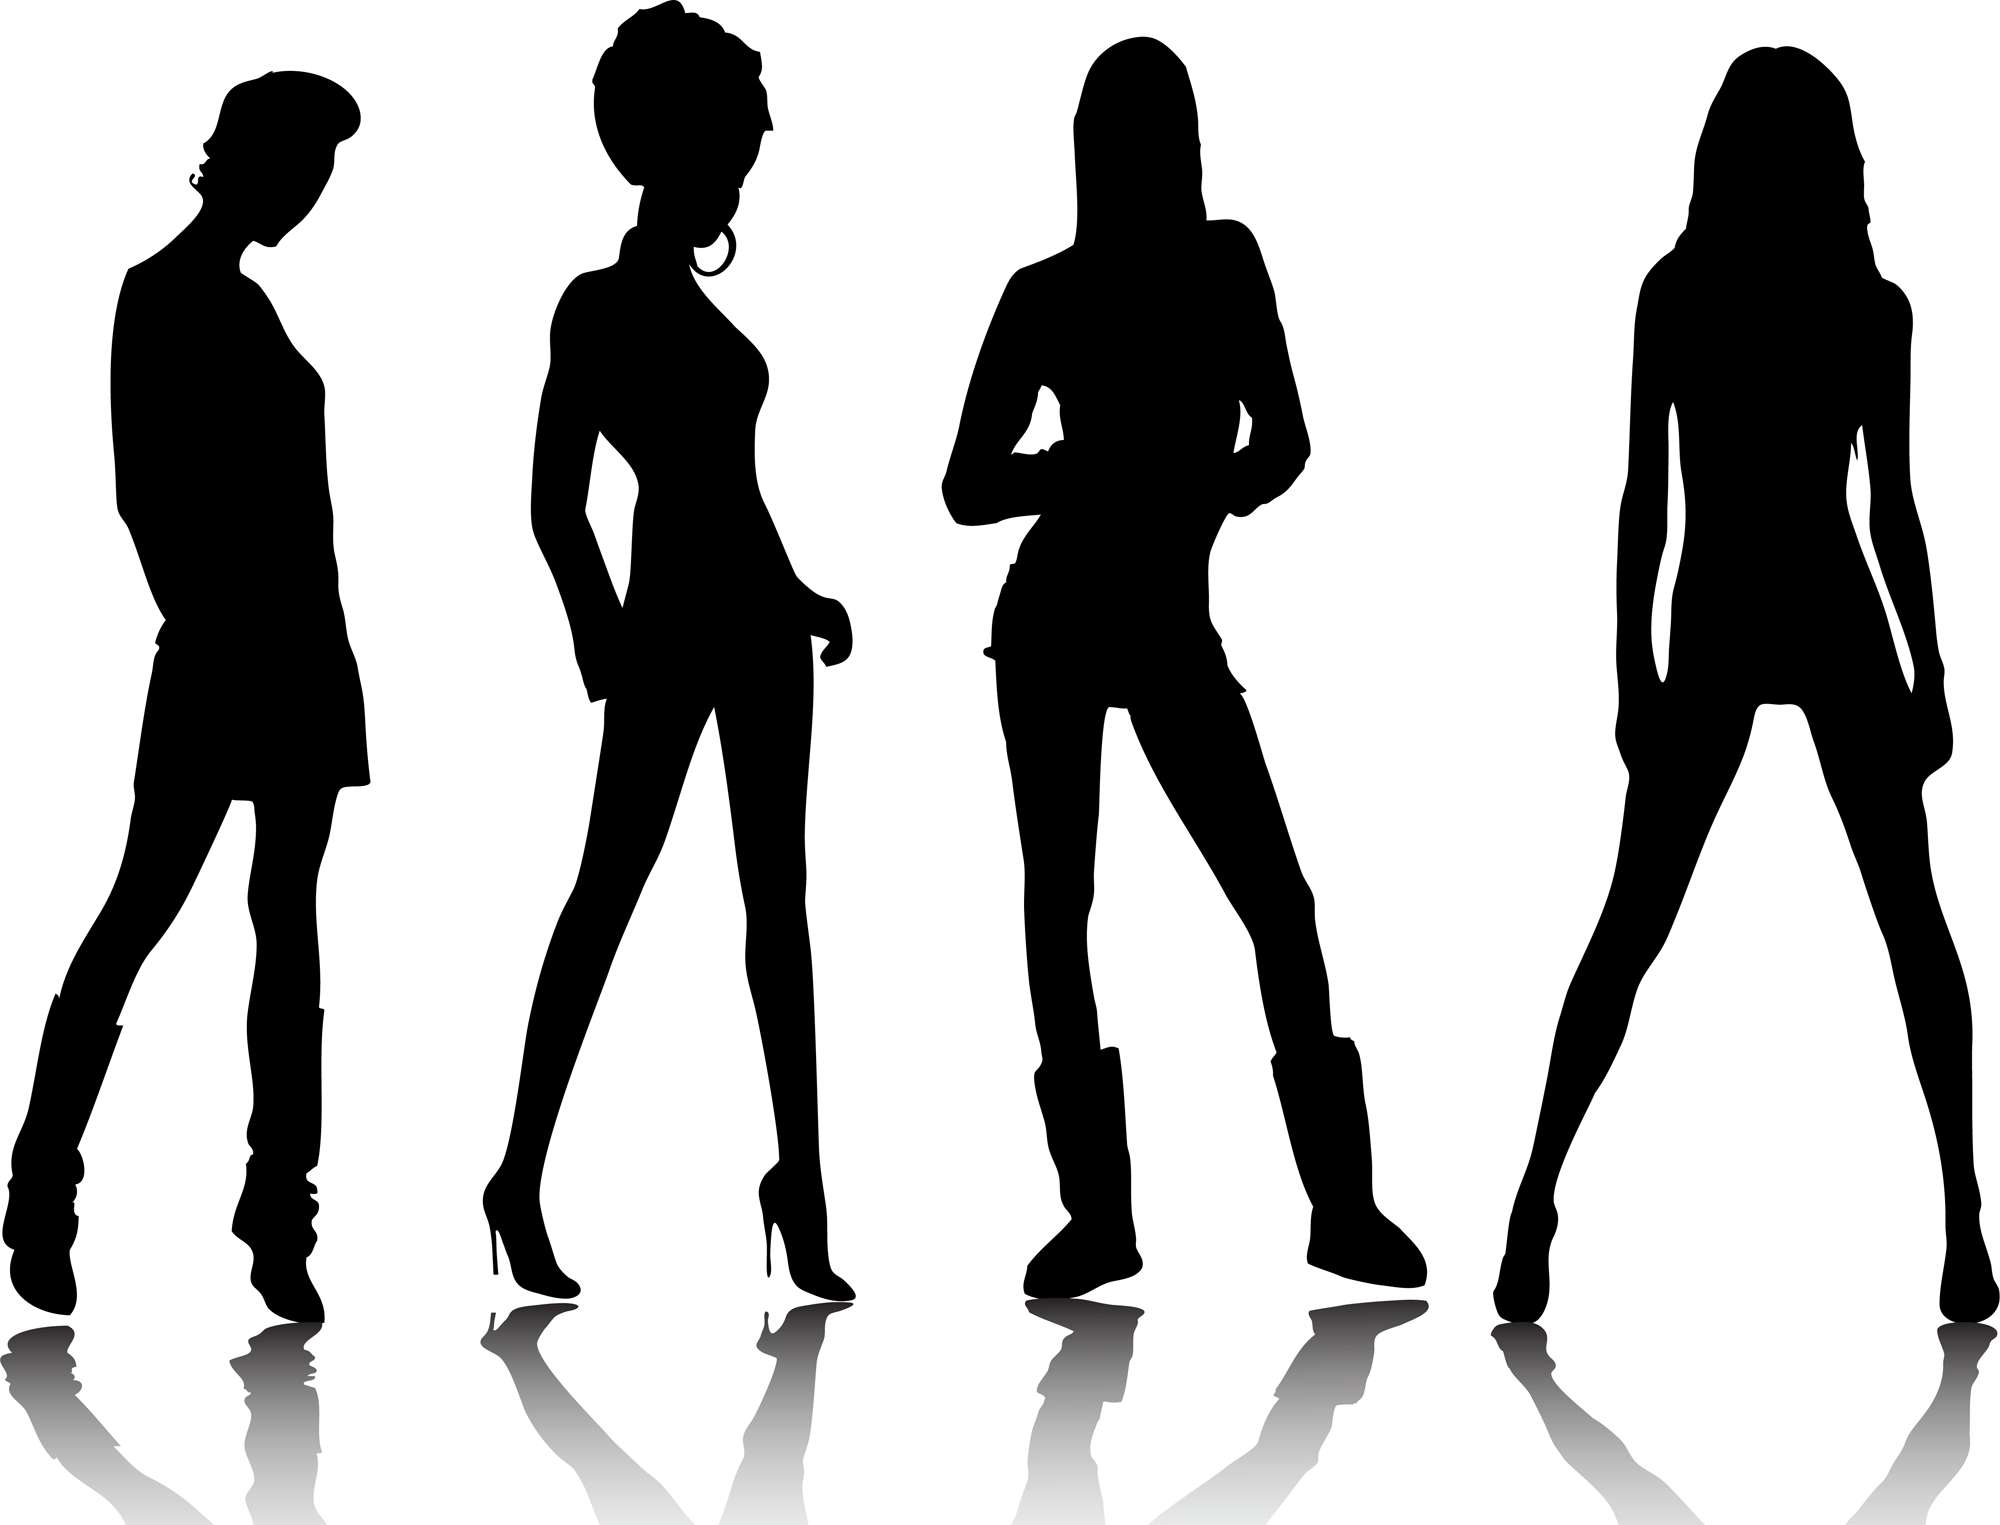 legged beautiful models silhouettes with different